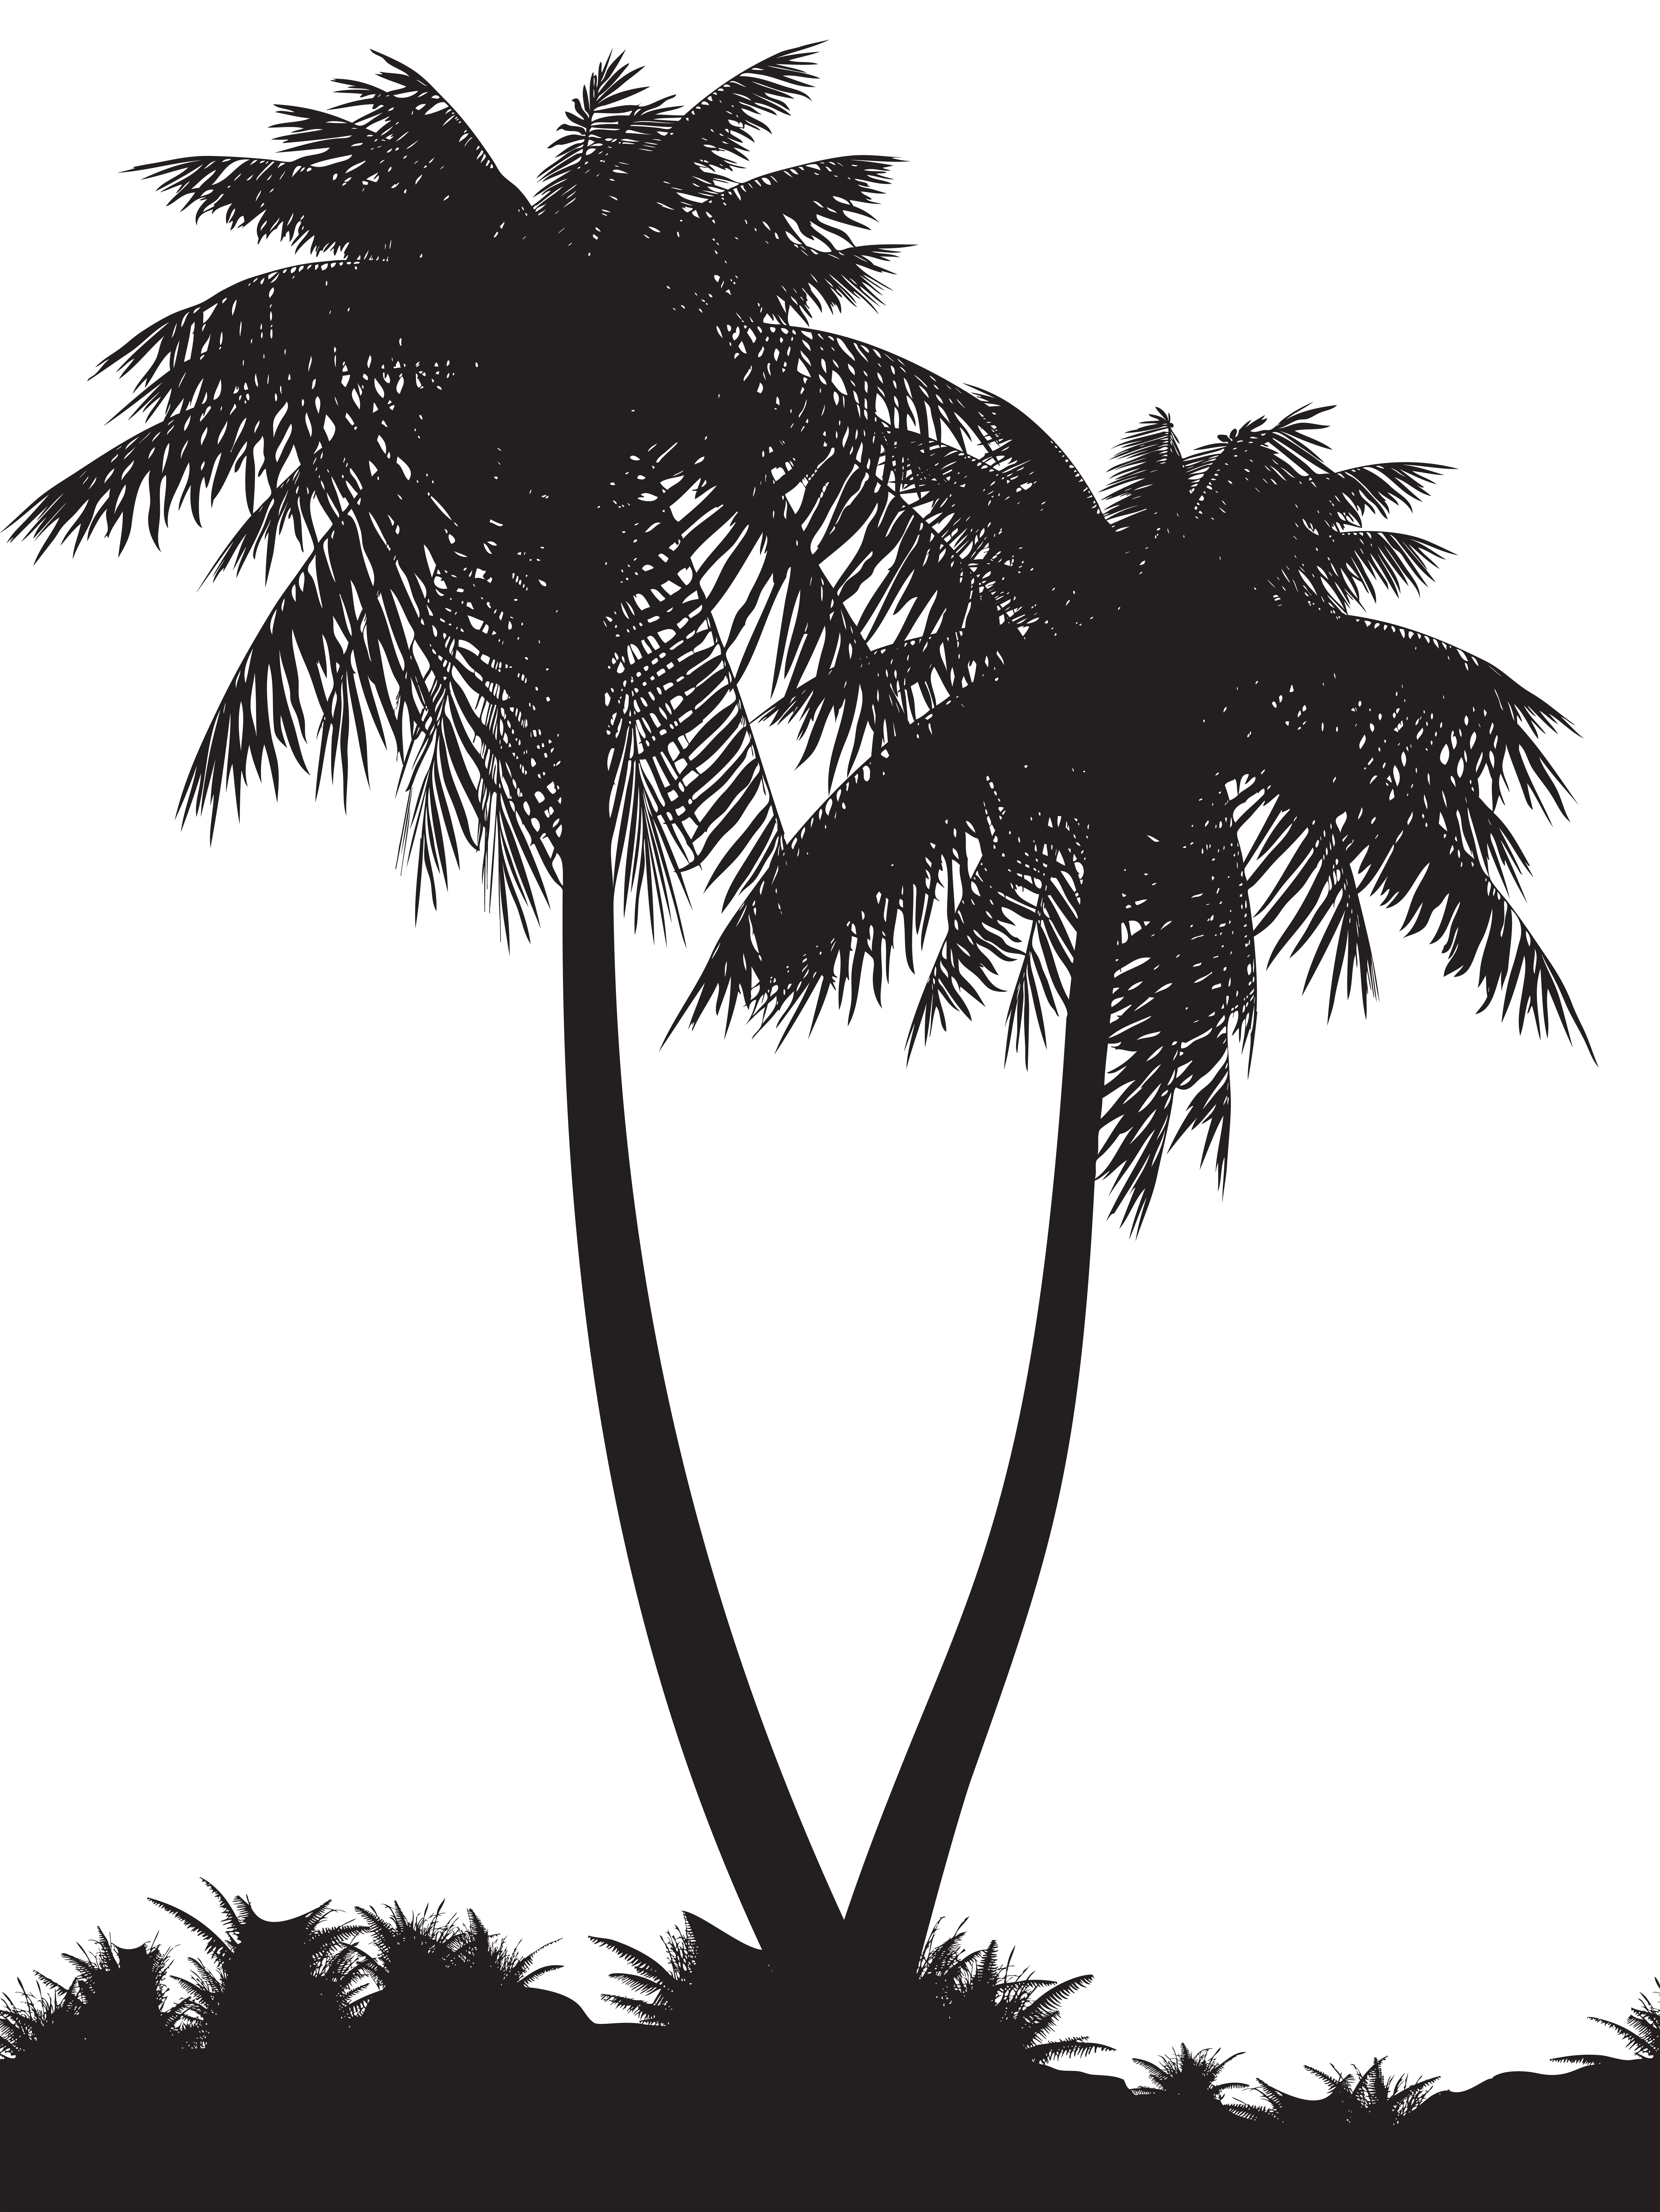 Palm trees silhouette png. Clip art image gallery